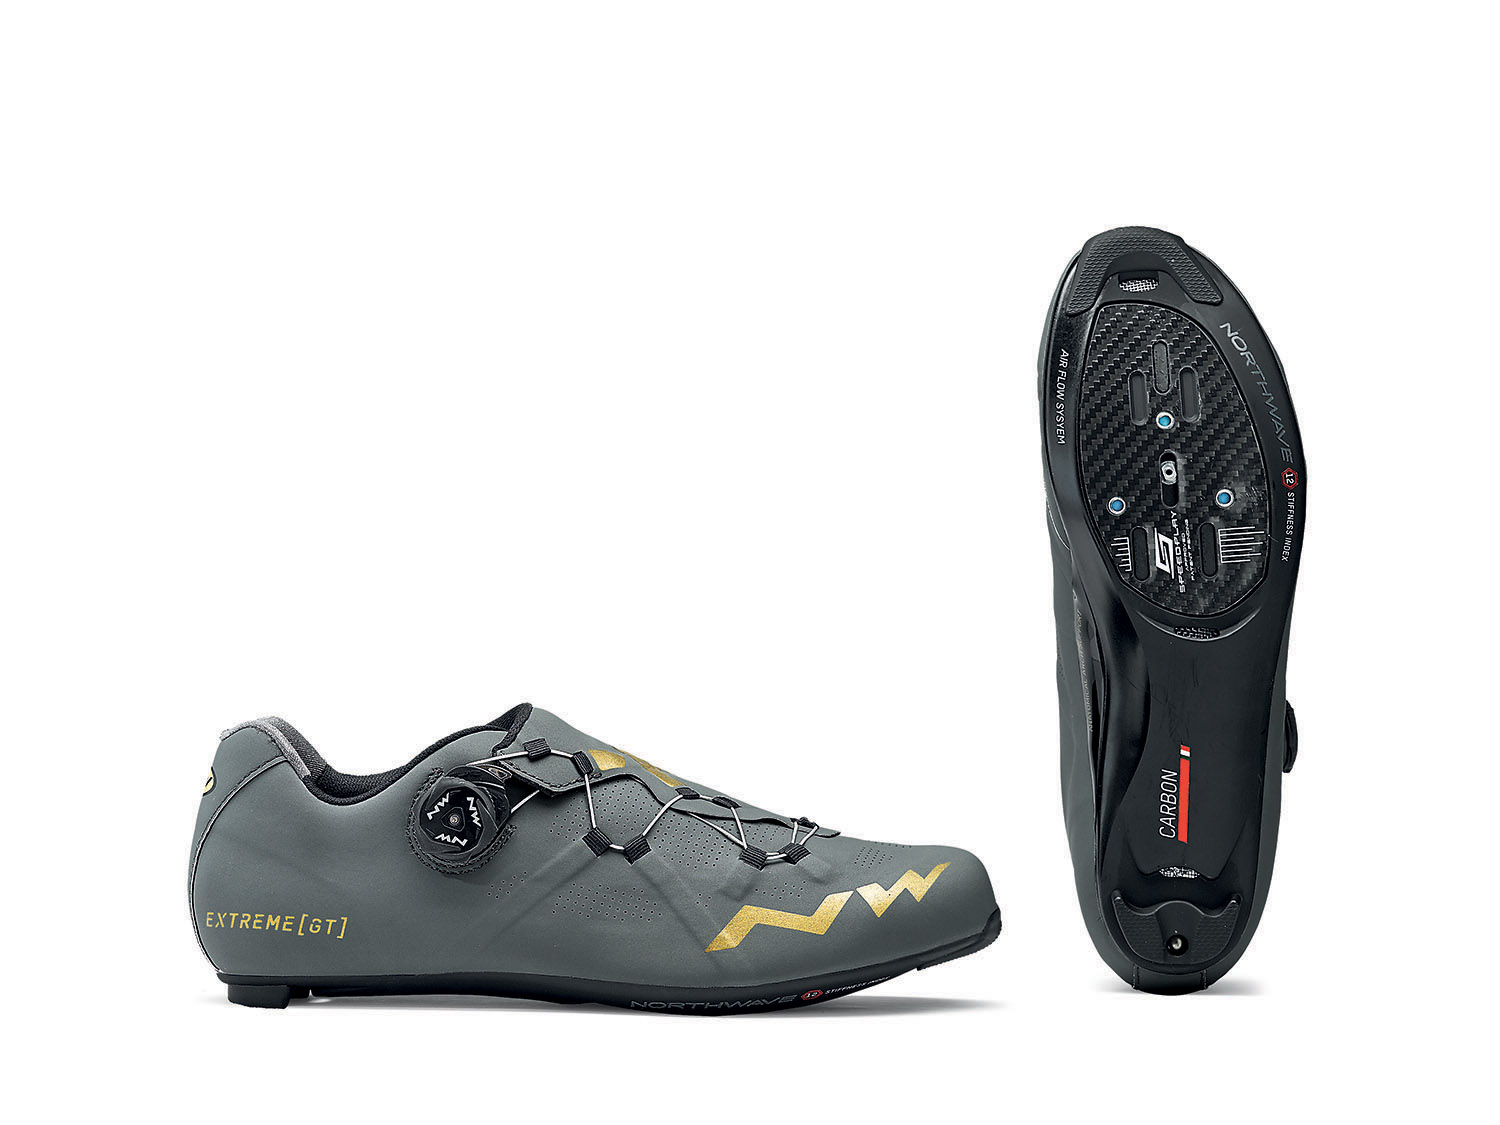 NORTHWAVE Shoes cyclism road man EXTREME GT gray antracite/gold